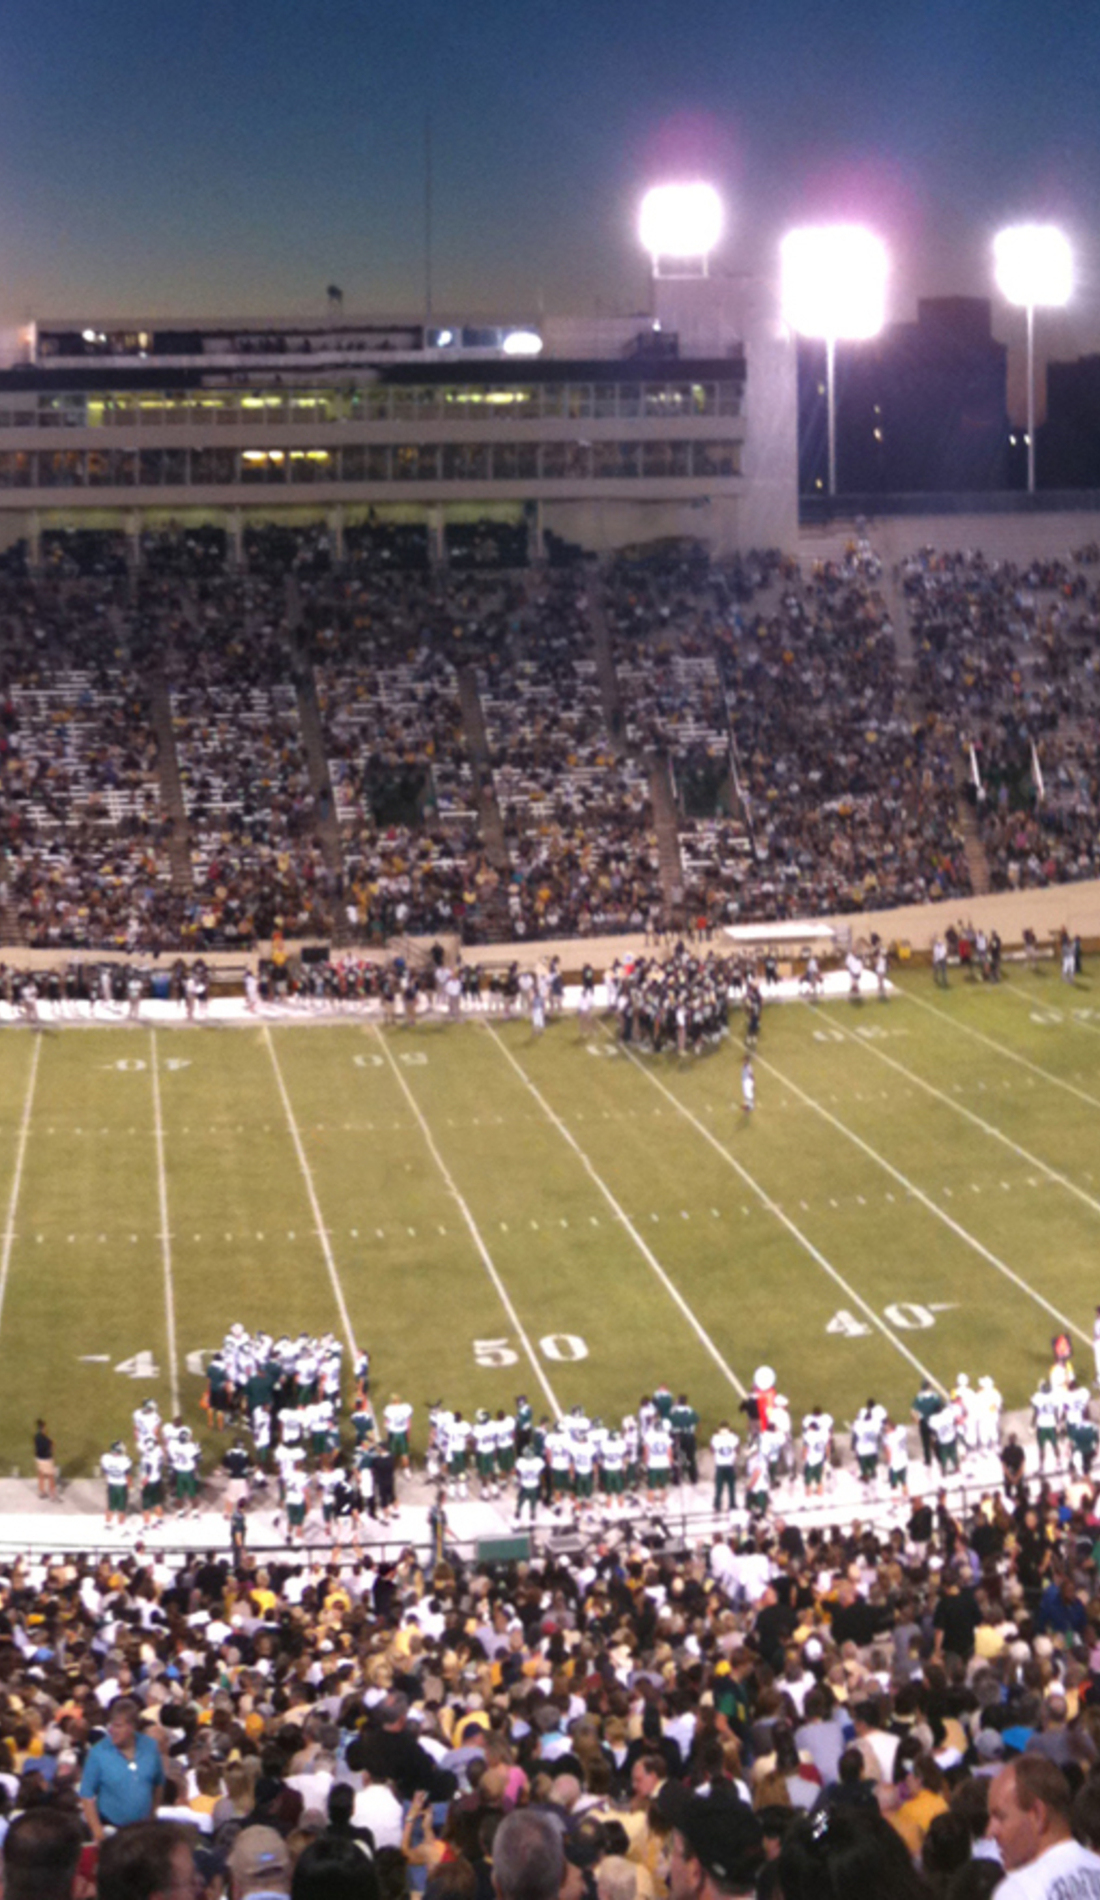 A Vanderbilt Commodores Football live event